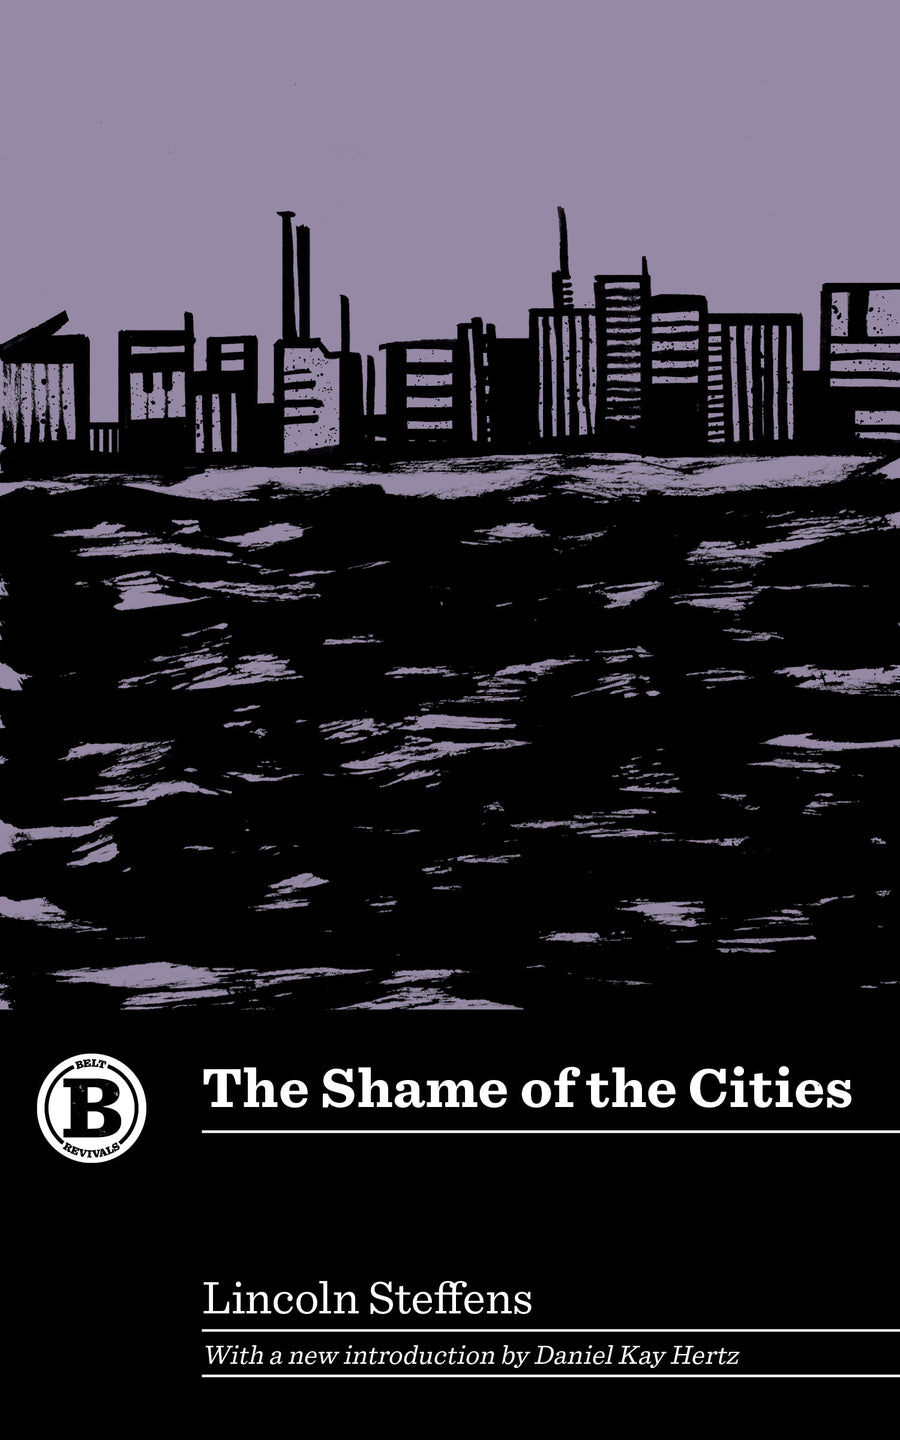 The Shame of the Cities by Lincoln Steffens - Belt Publishing